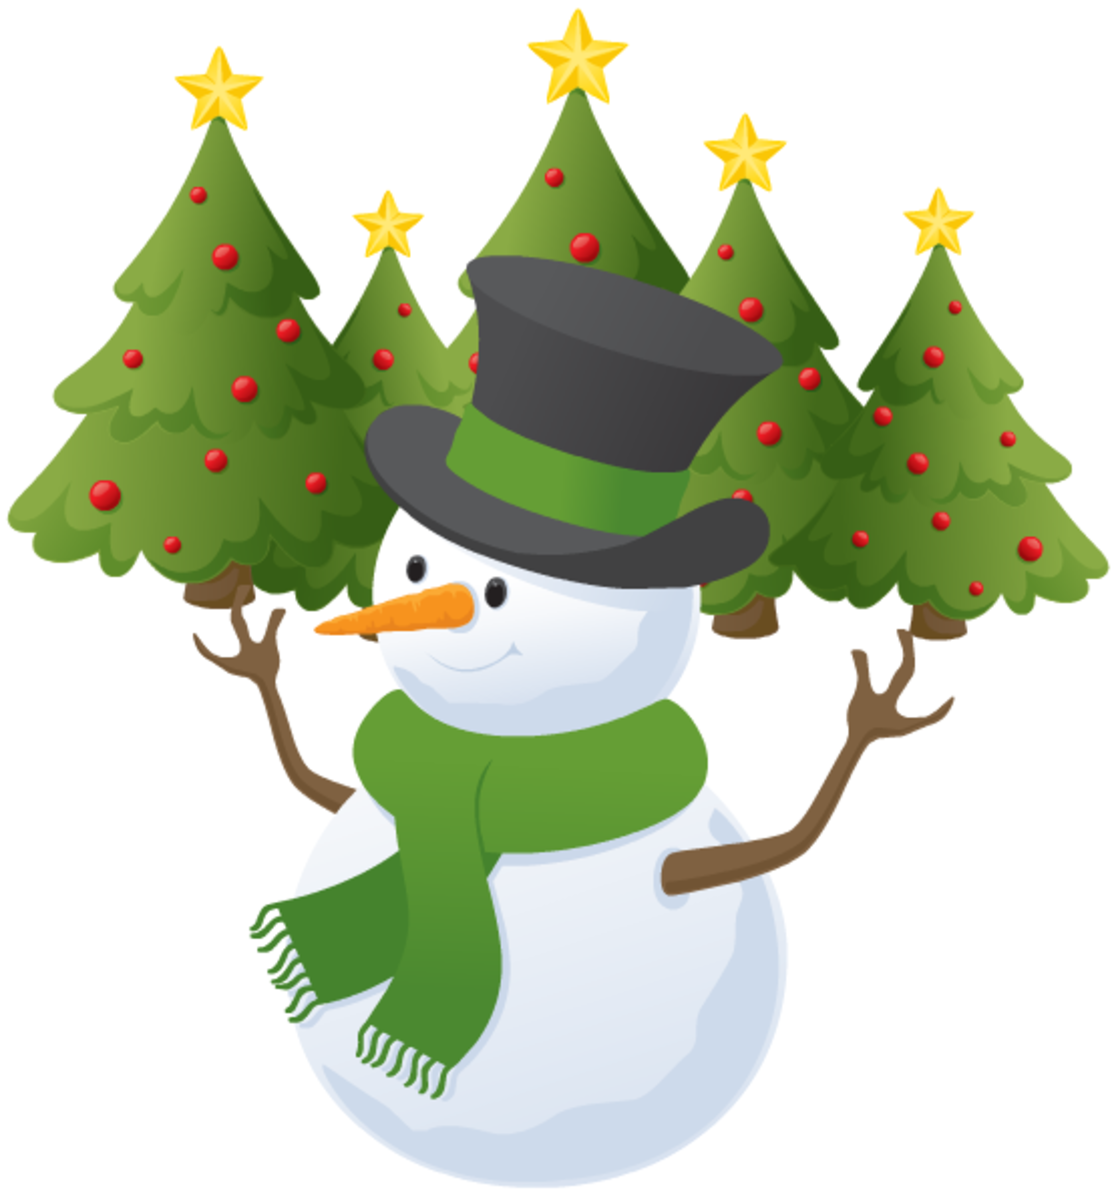 Christmas trees pictures: Christmas trees with snowman